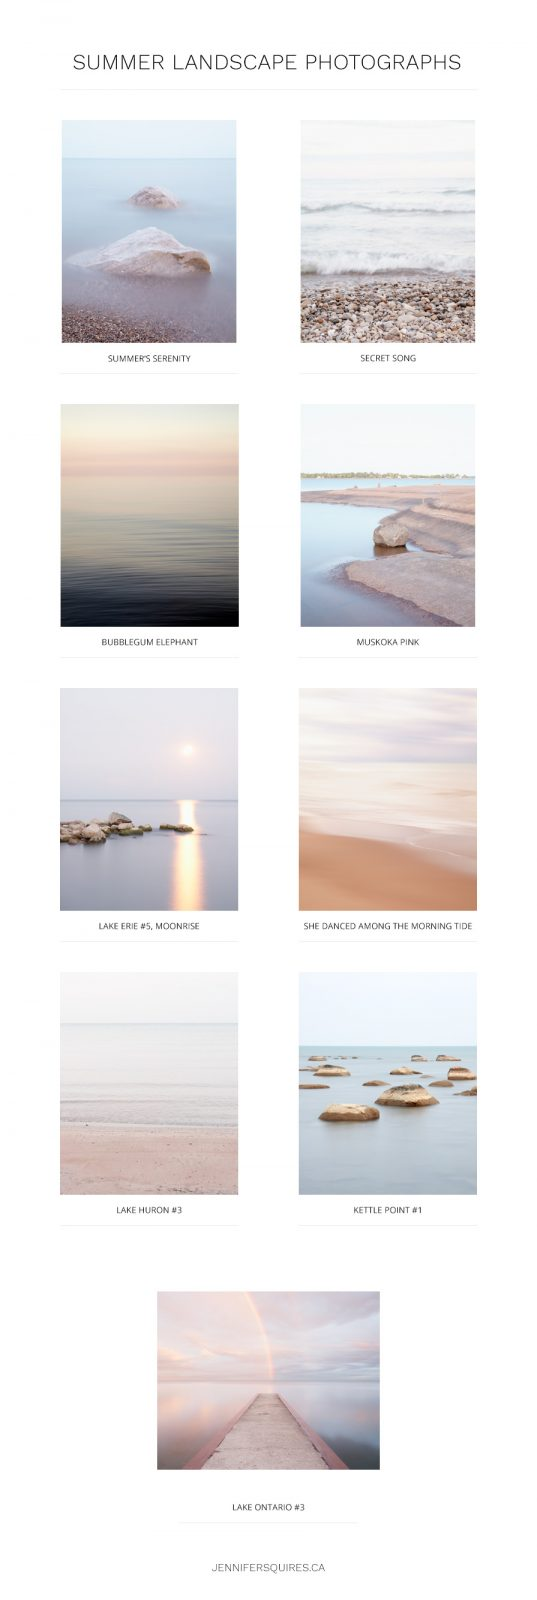 Best of Summer Landscape Photographs by Jennifer Squires